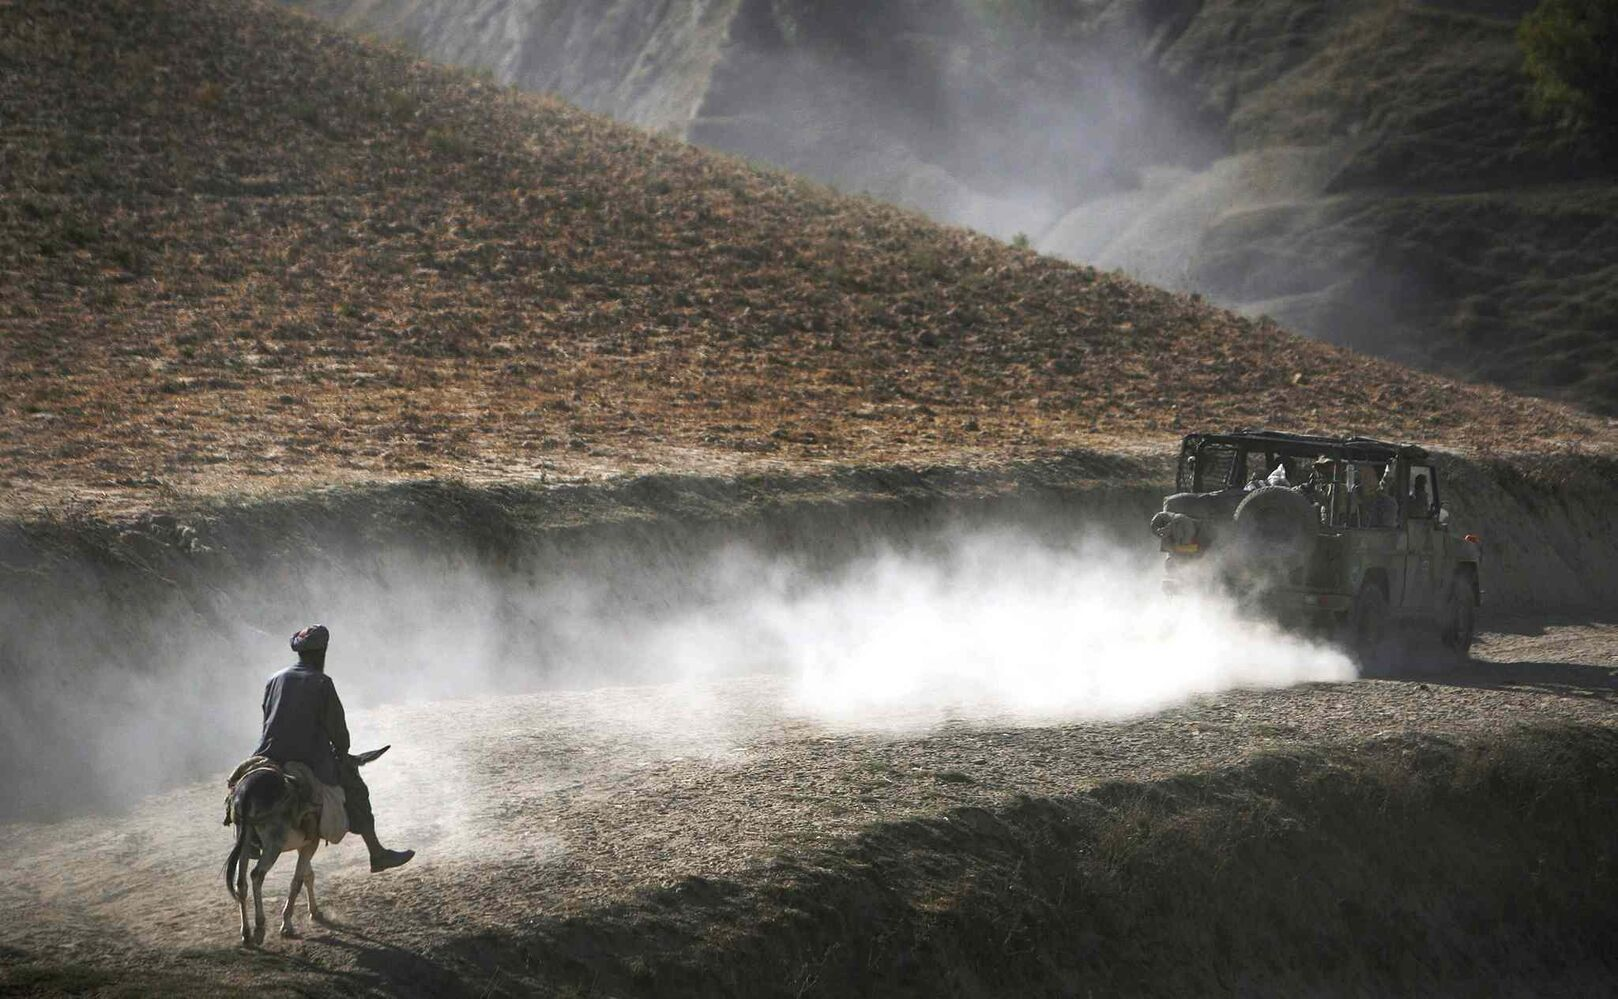 Sept. 15, 2009: An Afghan man on his donkey follows a convoy of German ISAF soldiers patrolling Yaftal E Sofla, in the mountainous region of Feyzabad, east of Kunduz, Afghanistan. (Anja Niedringhaus / The Associated Press)